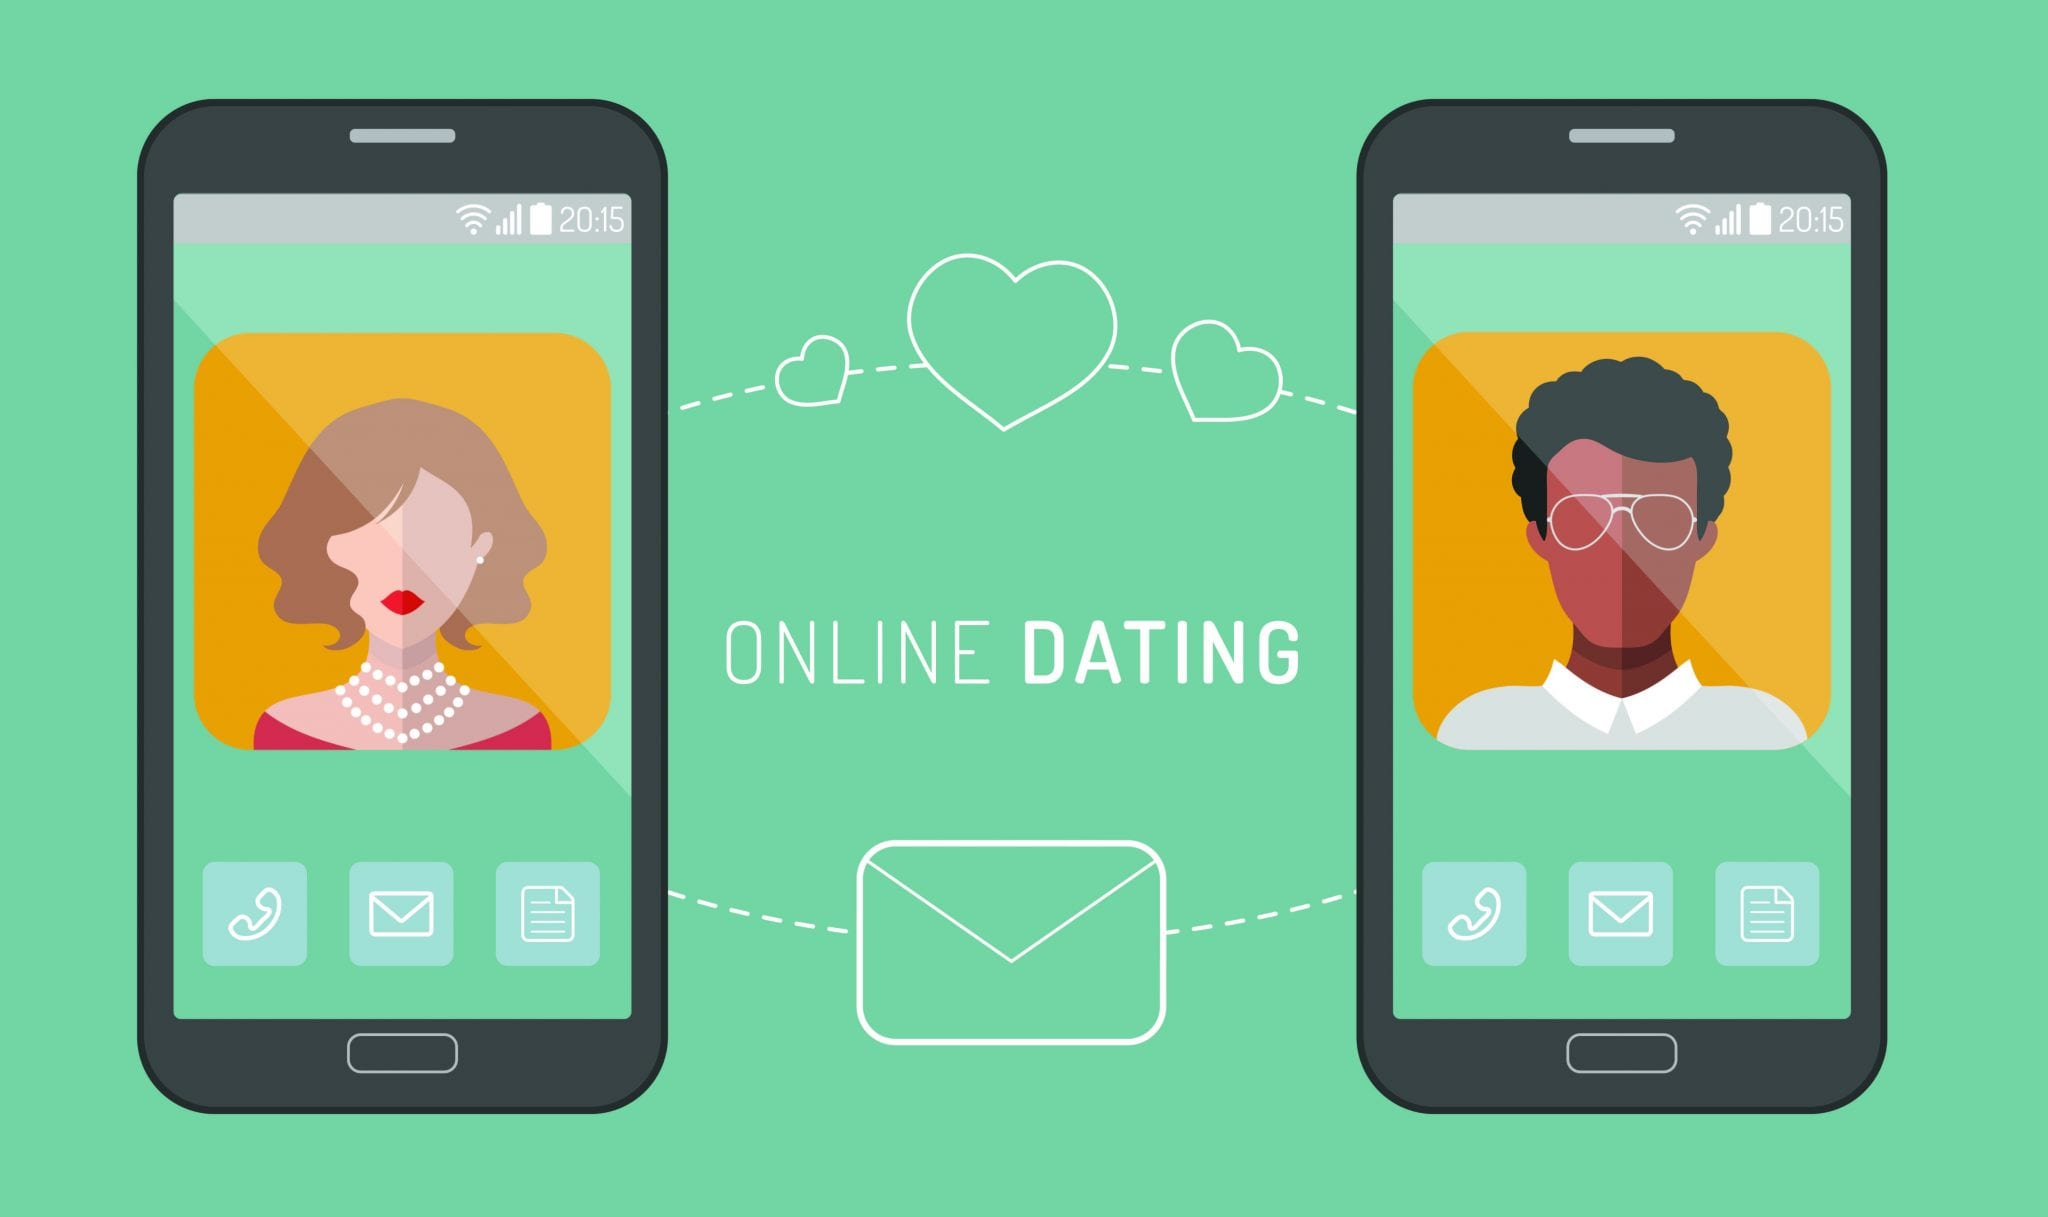 Quit online dating in Melbourne